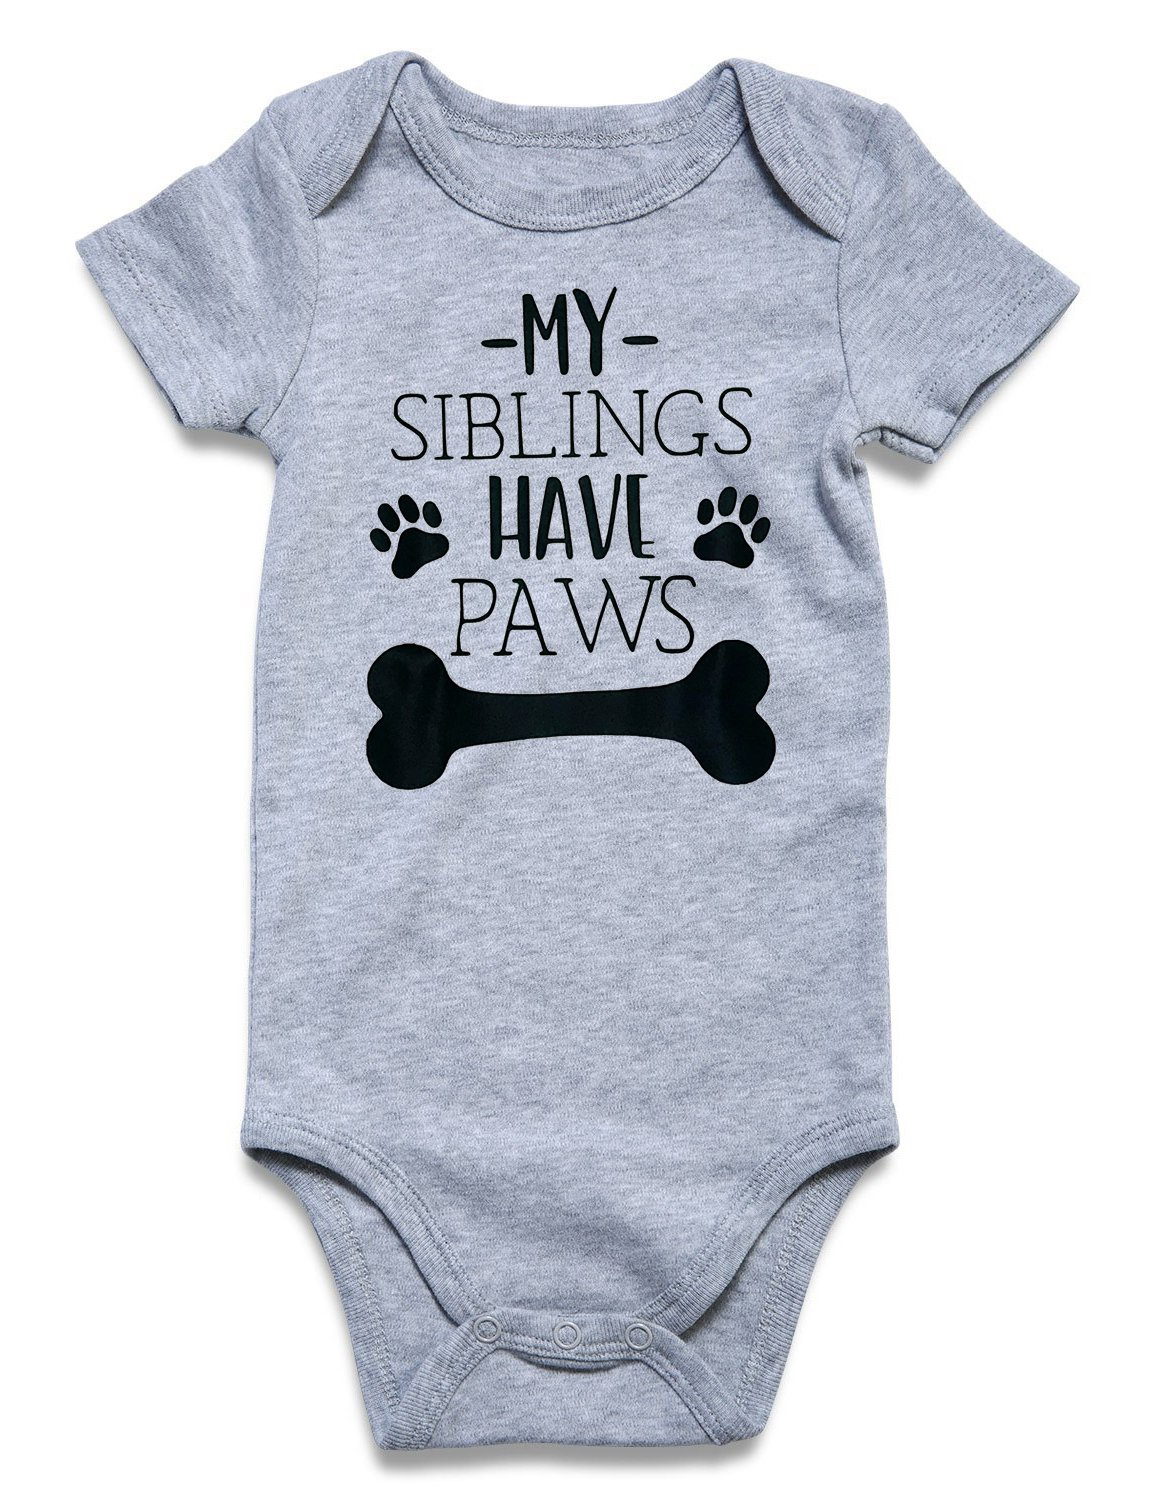 Cutemefy Cool Infant Baby My Sibling Have Paws Short Sleeve Letter Print Romper Jumpsuit Underwear